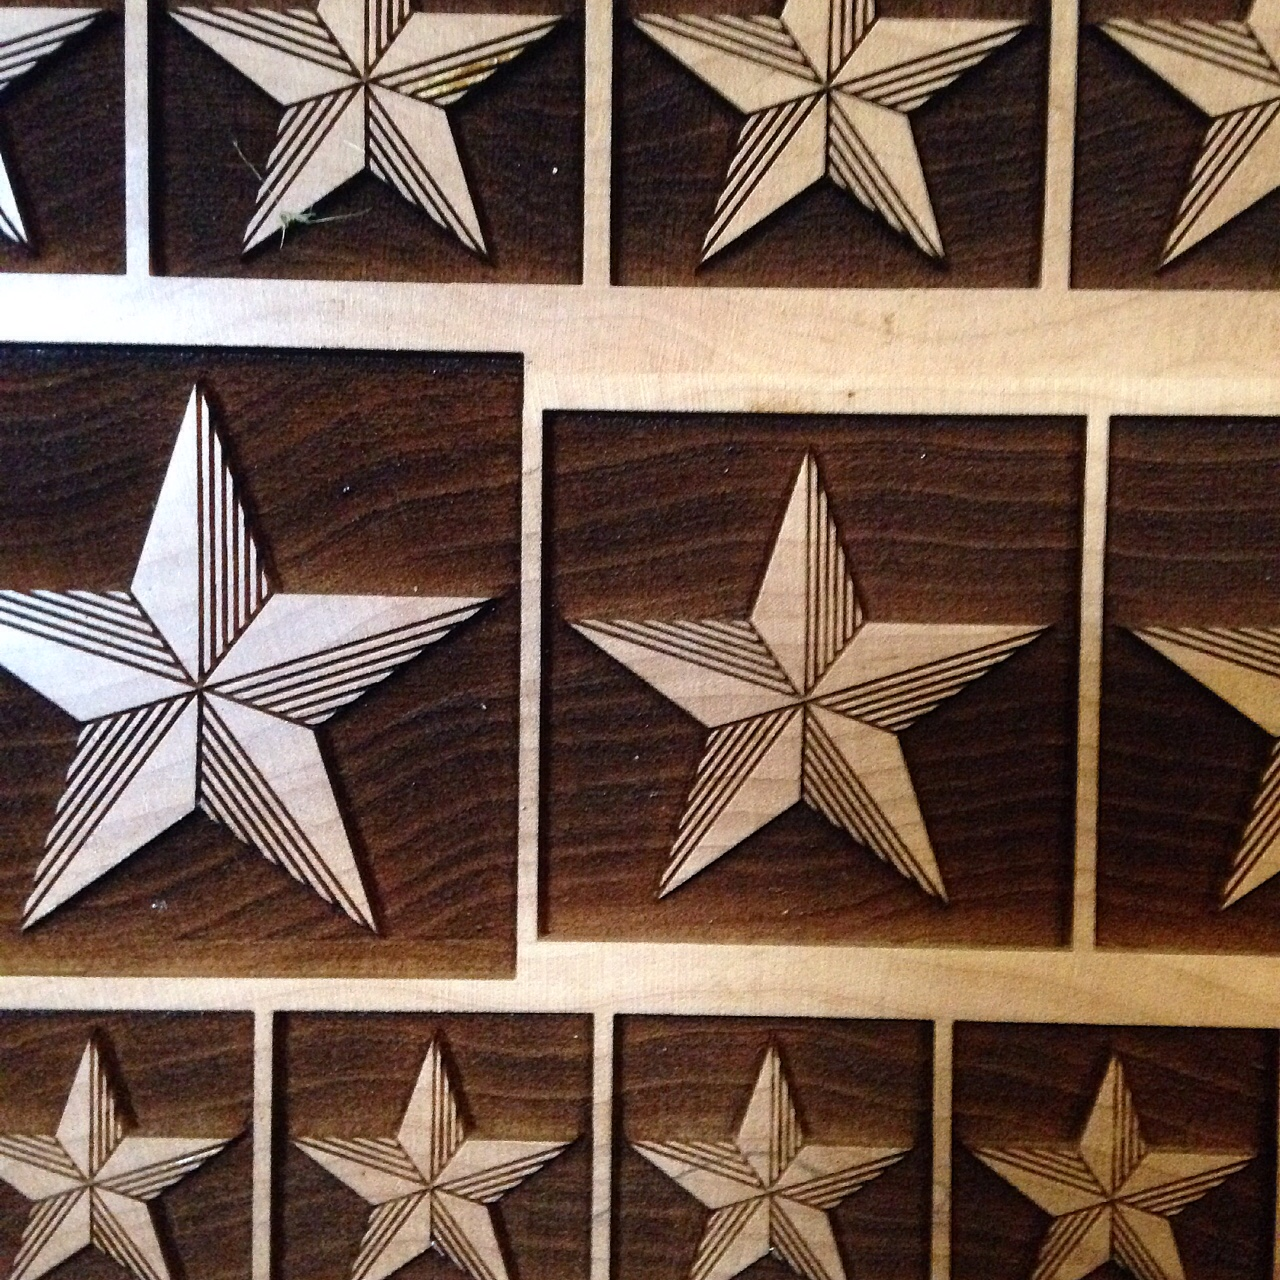 Laser cut slab of fiinal stars